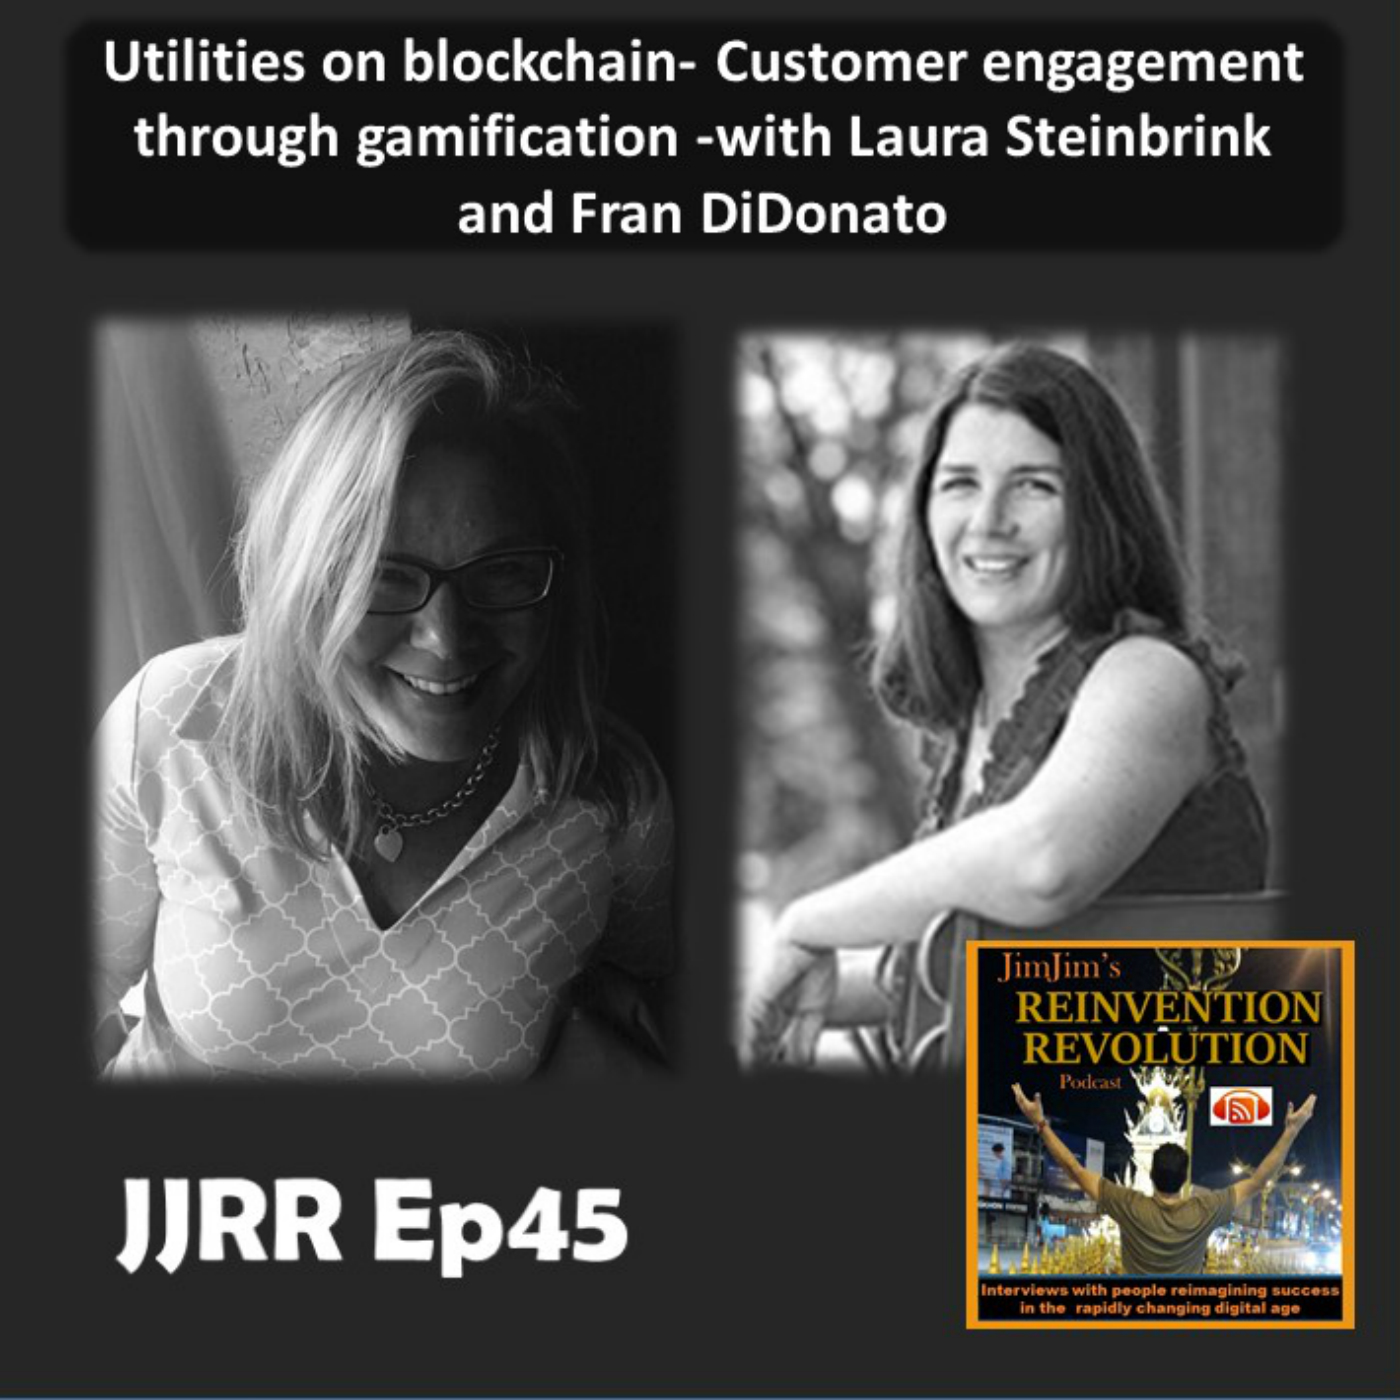 JJRR Ep45 Utilities on blockchain – Customer engagement through gamification – with Laura Steinbrink and Fran DiDonato